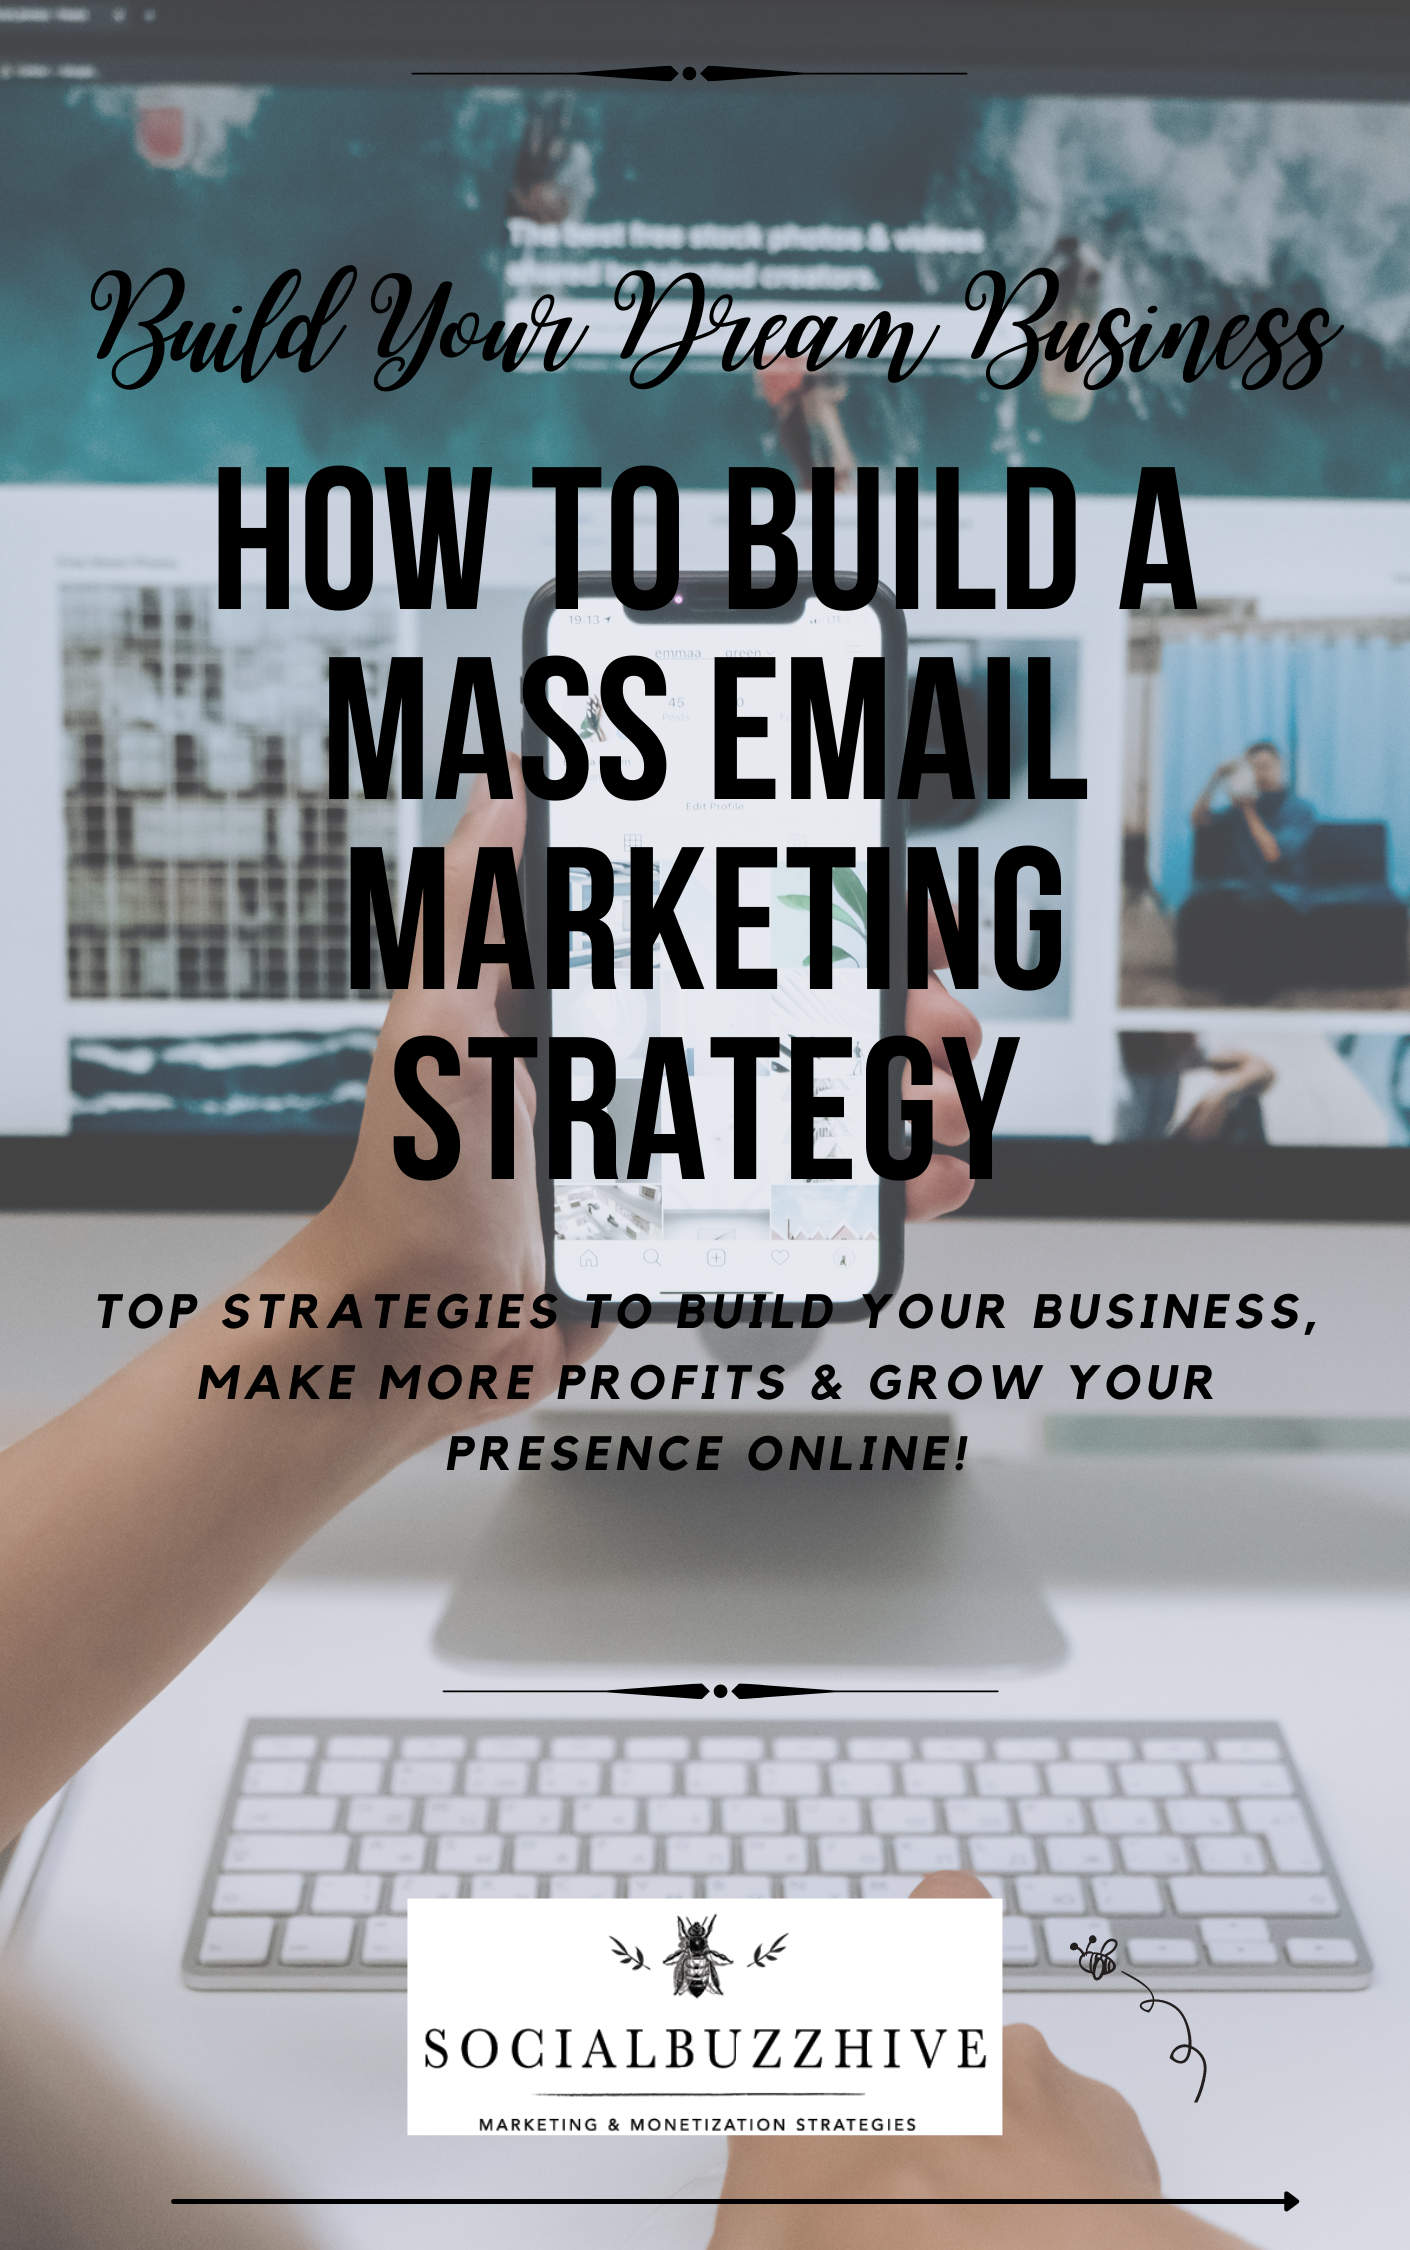 build a masss email marketing strategy